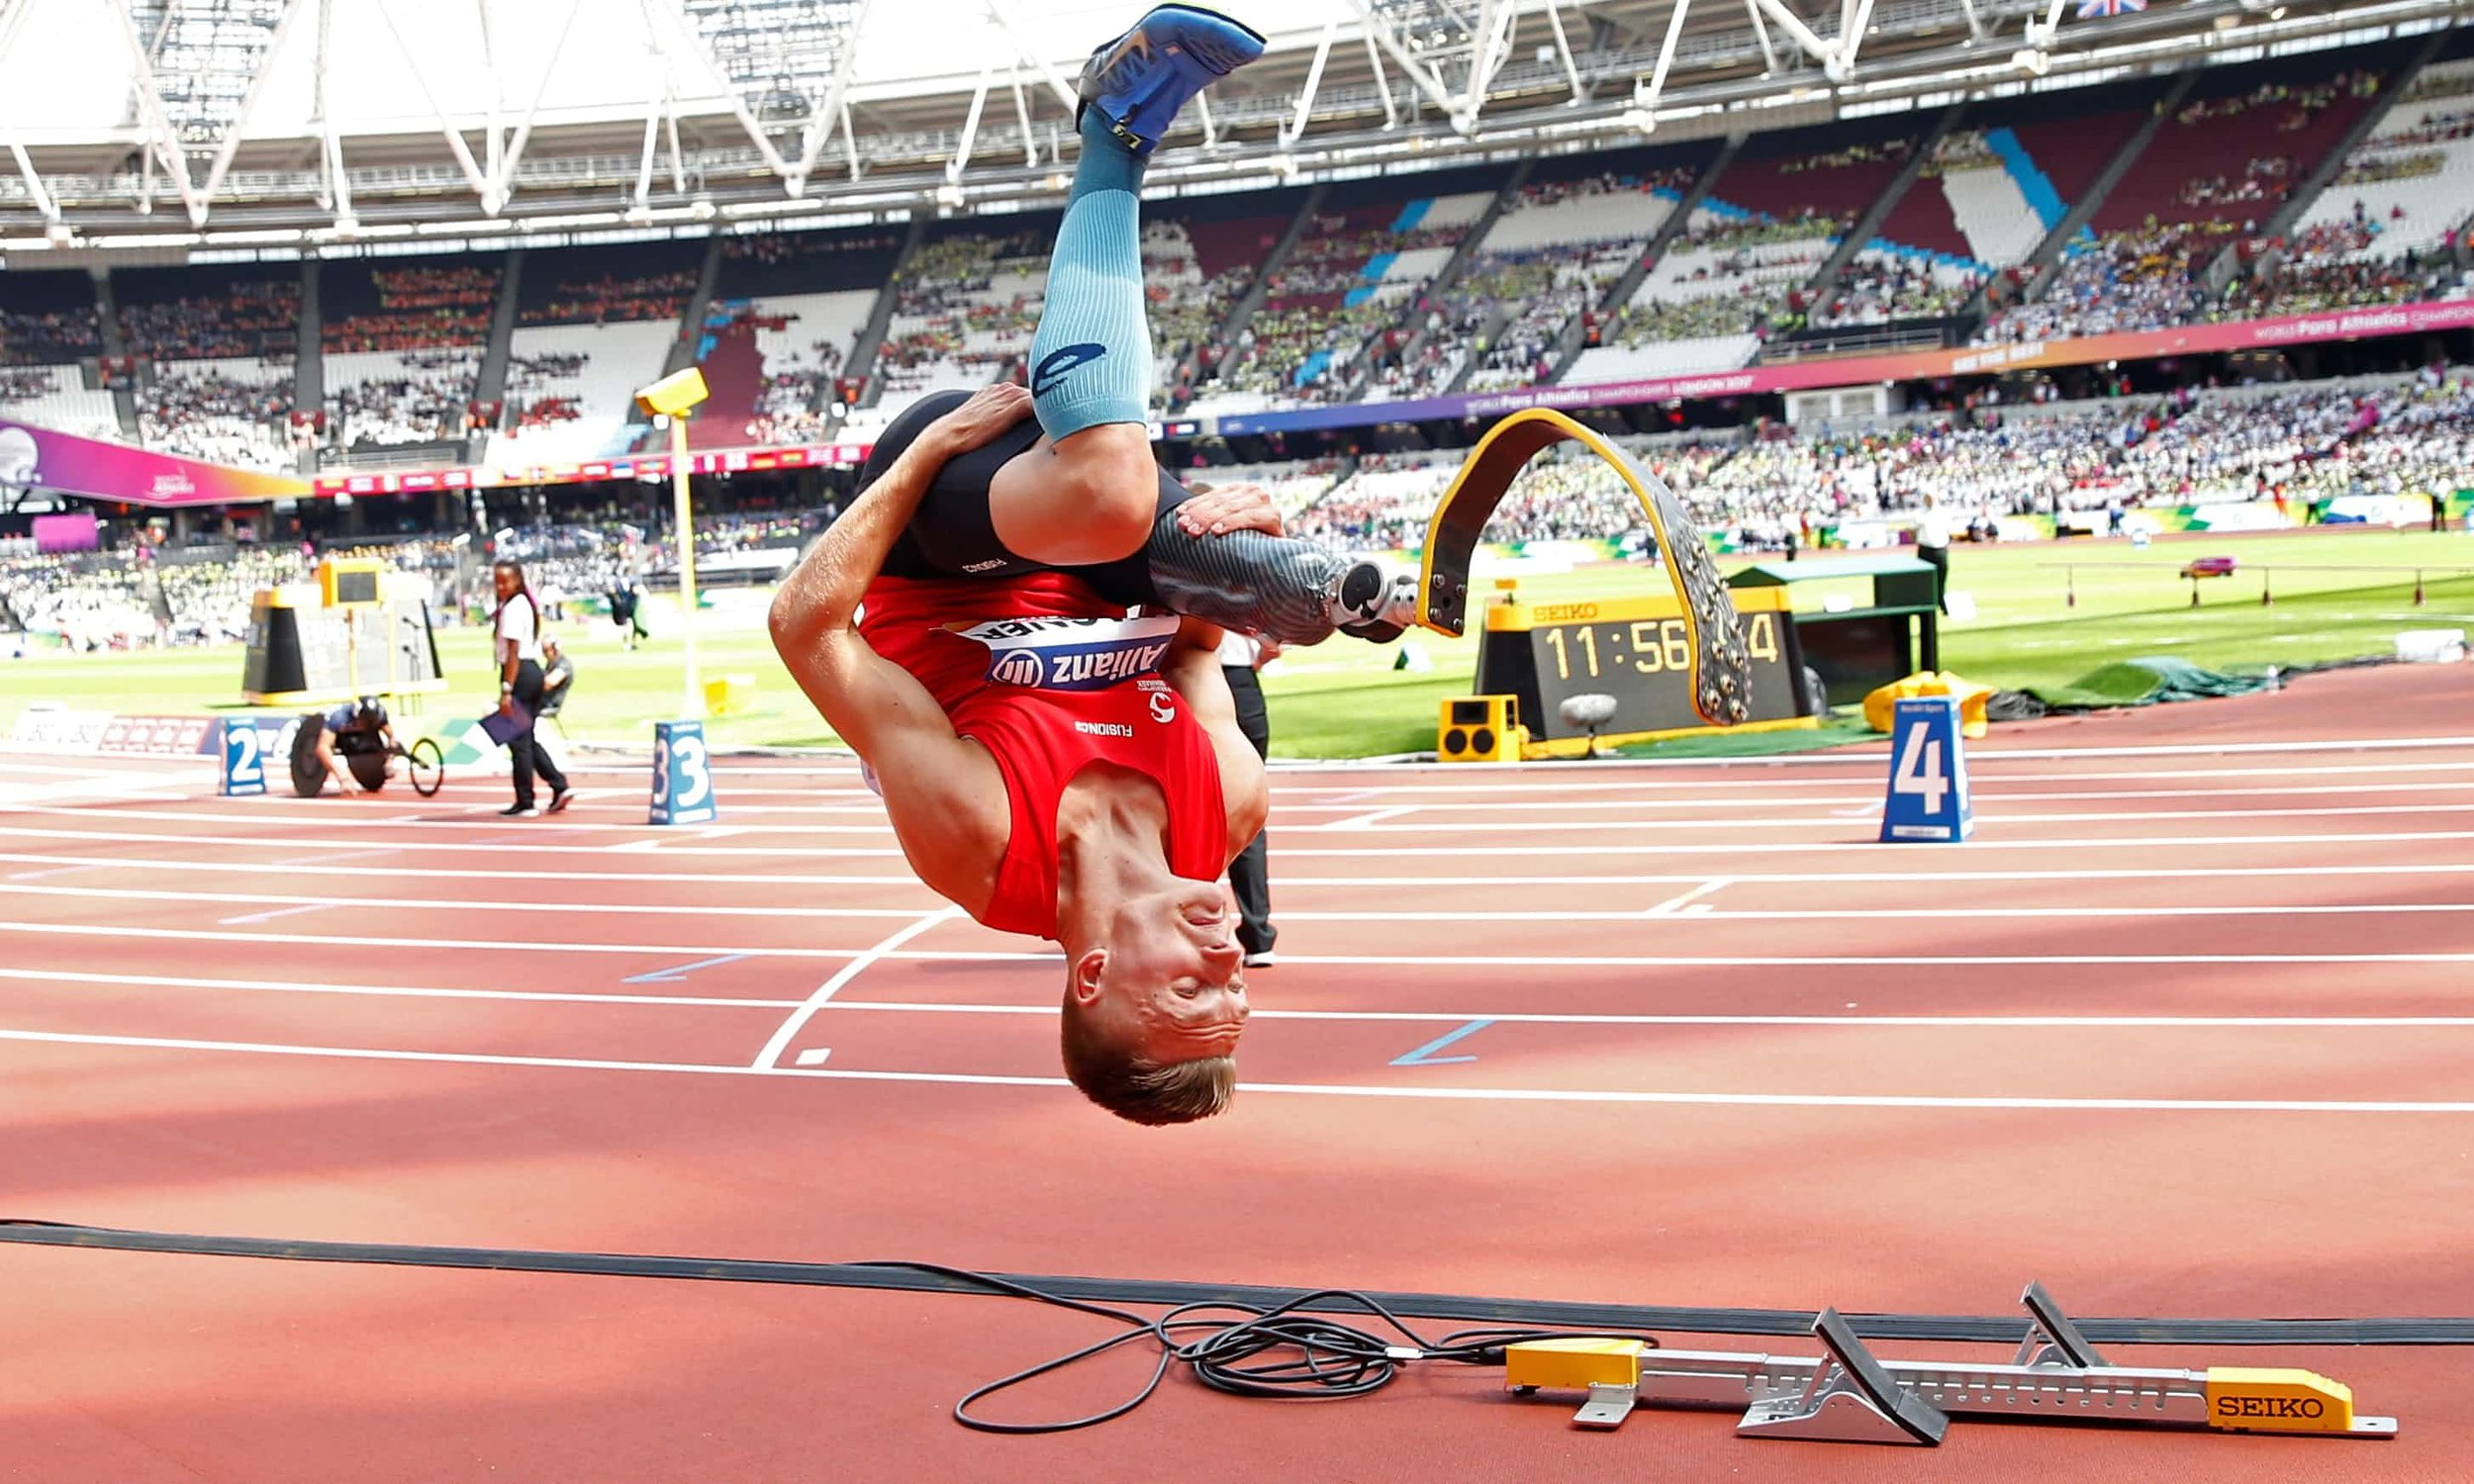 London, England   Denmark's Daniel Wagner celebrates winning the men's T42 long jump at the IAAF World Para Athletics Championships  Photograph: Peter Cziborra/Action Images via Reuters